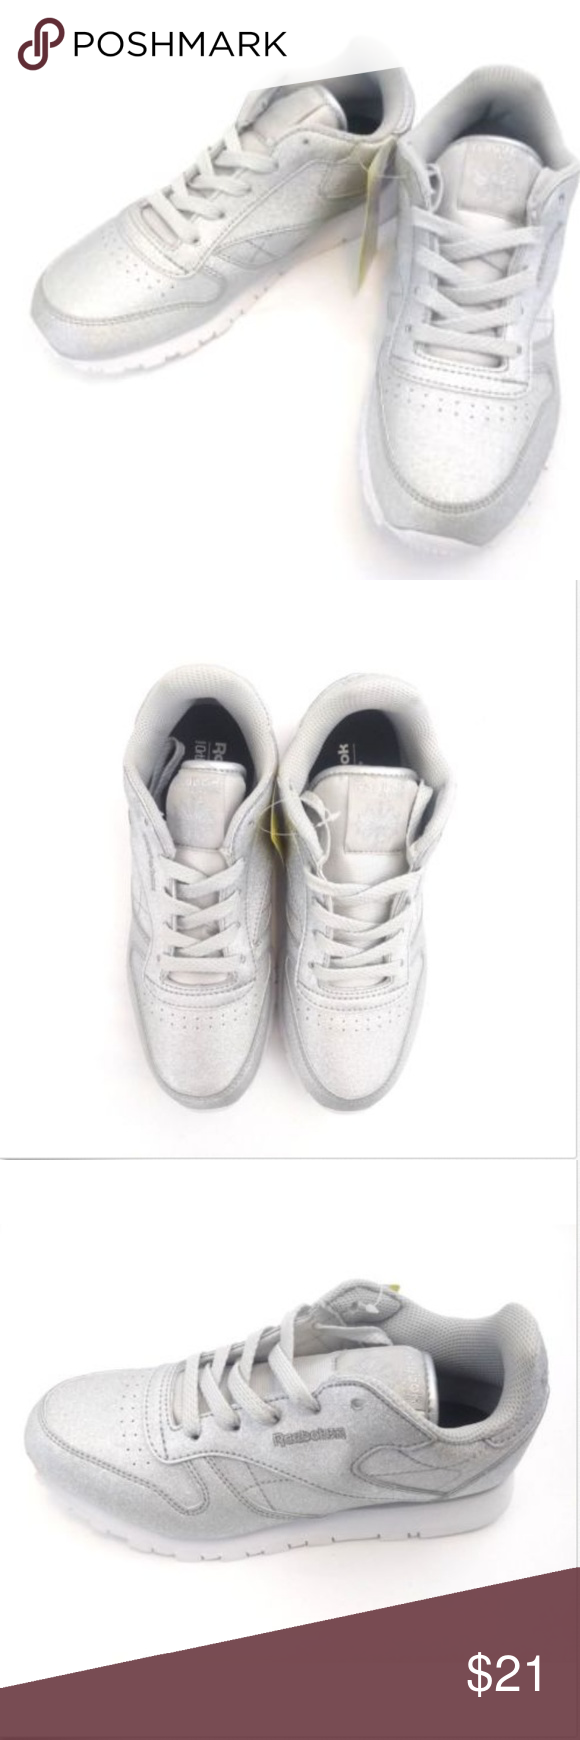 33612ff17387 Reebok In Kids Little Girls Size 3 Youth New Reebok Classic Leather Syn Kids  Shoes Size 3 Silver Met Snow Gray New QTY 1 Condition  New with box Brand   ...